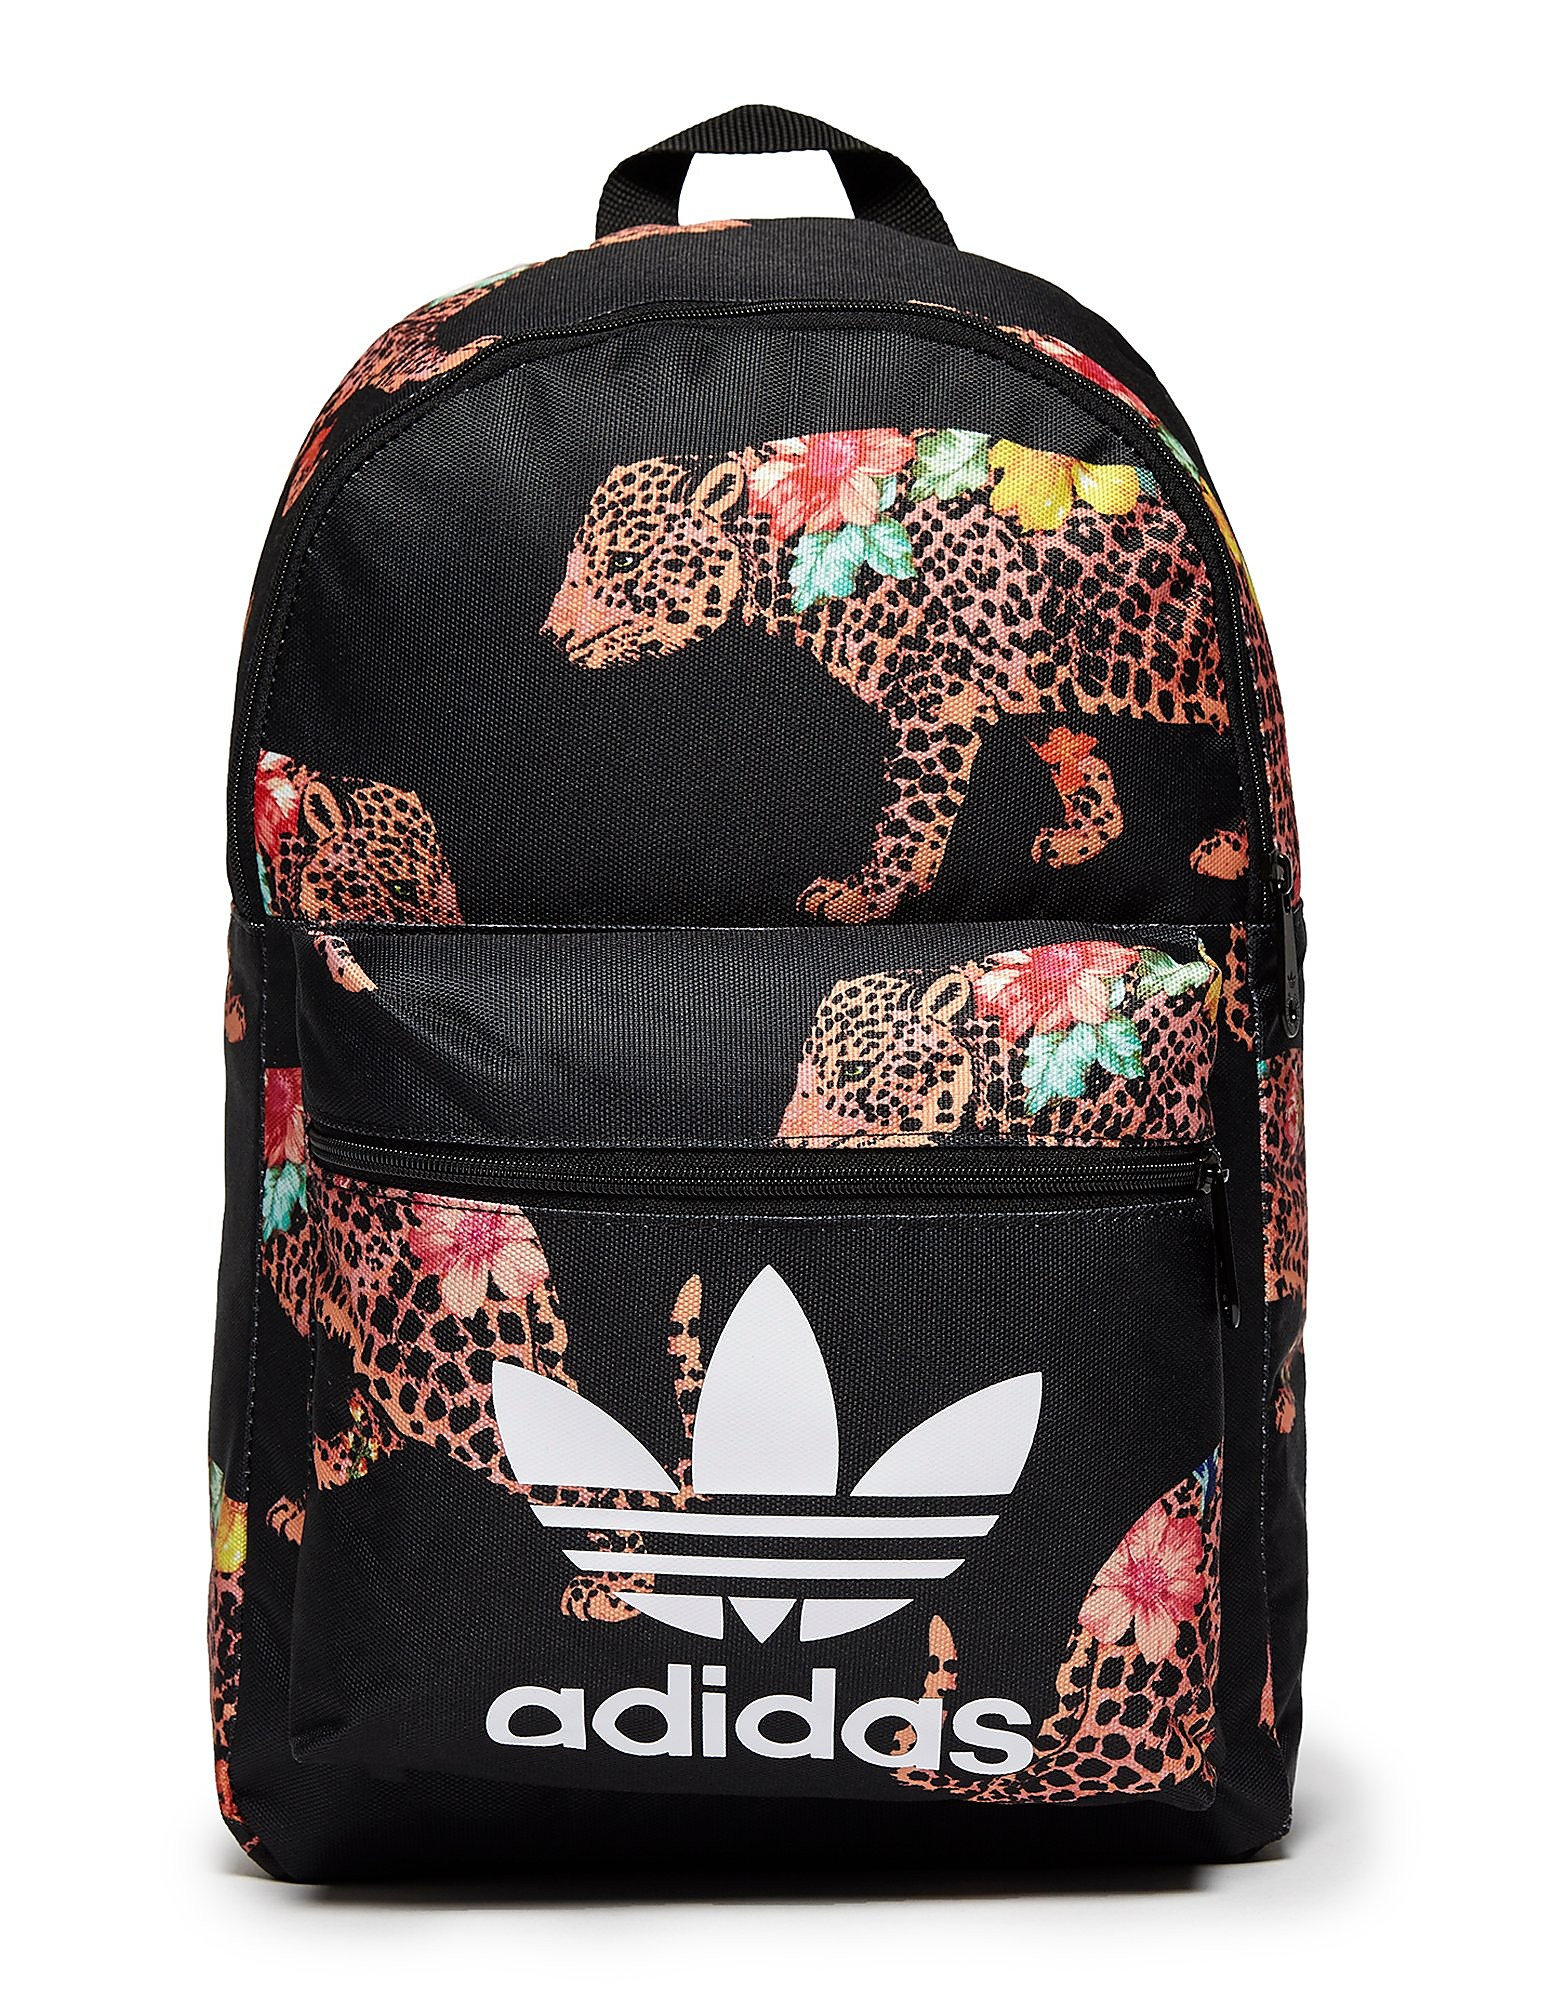 adidas Originals Classic Oncada Backpack